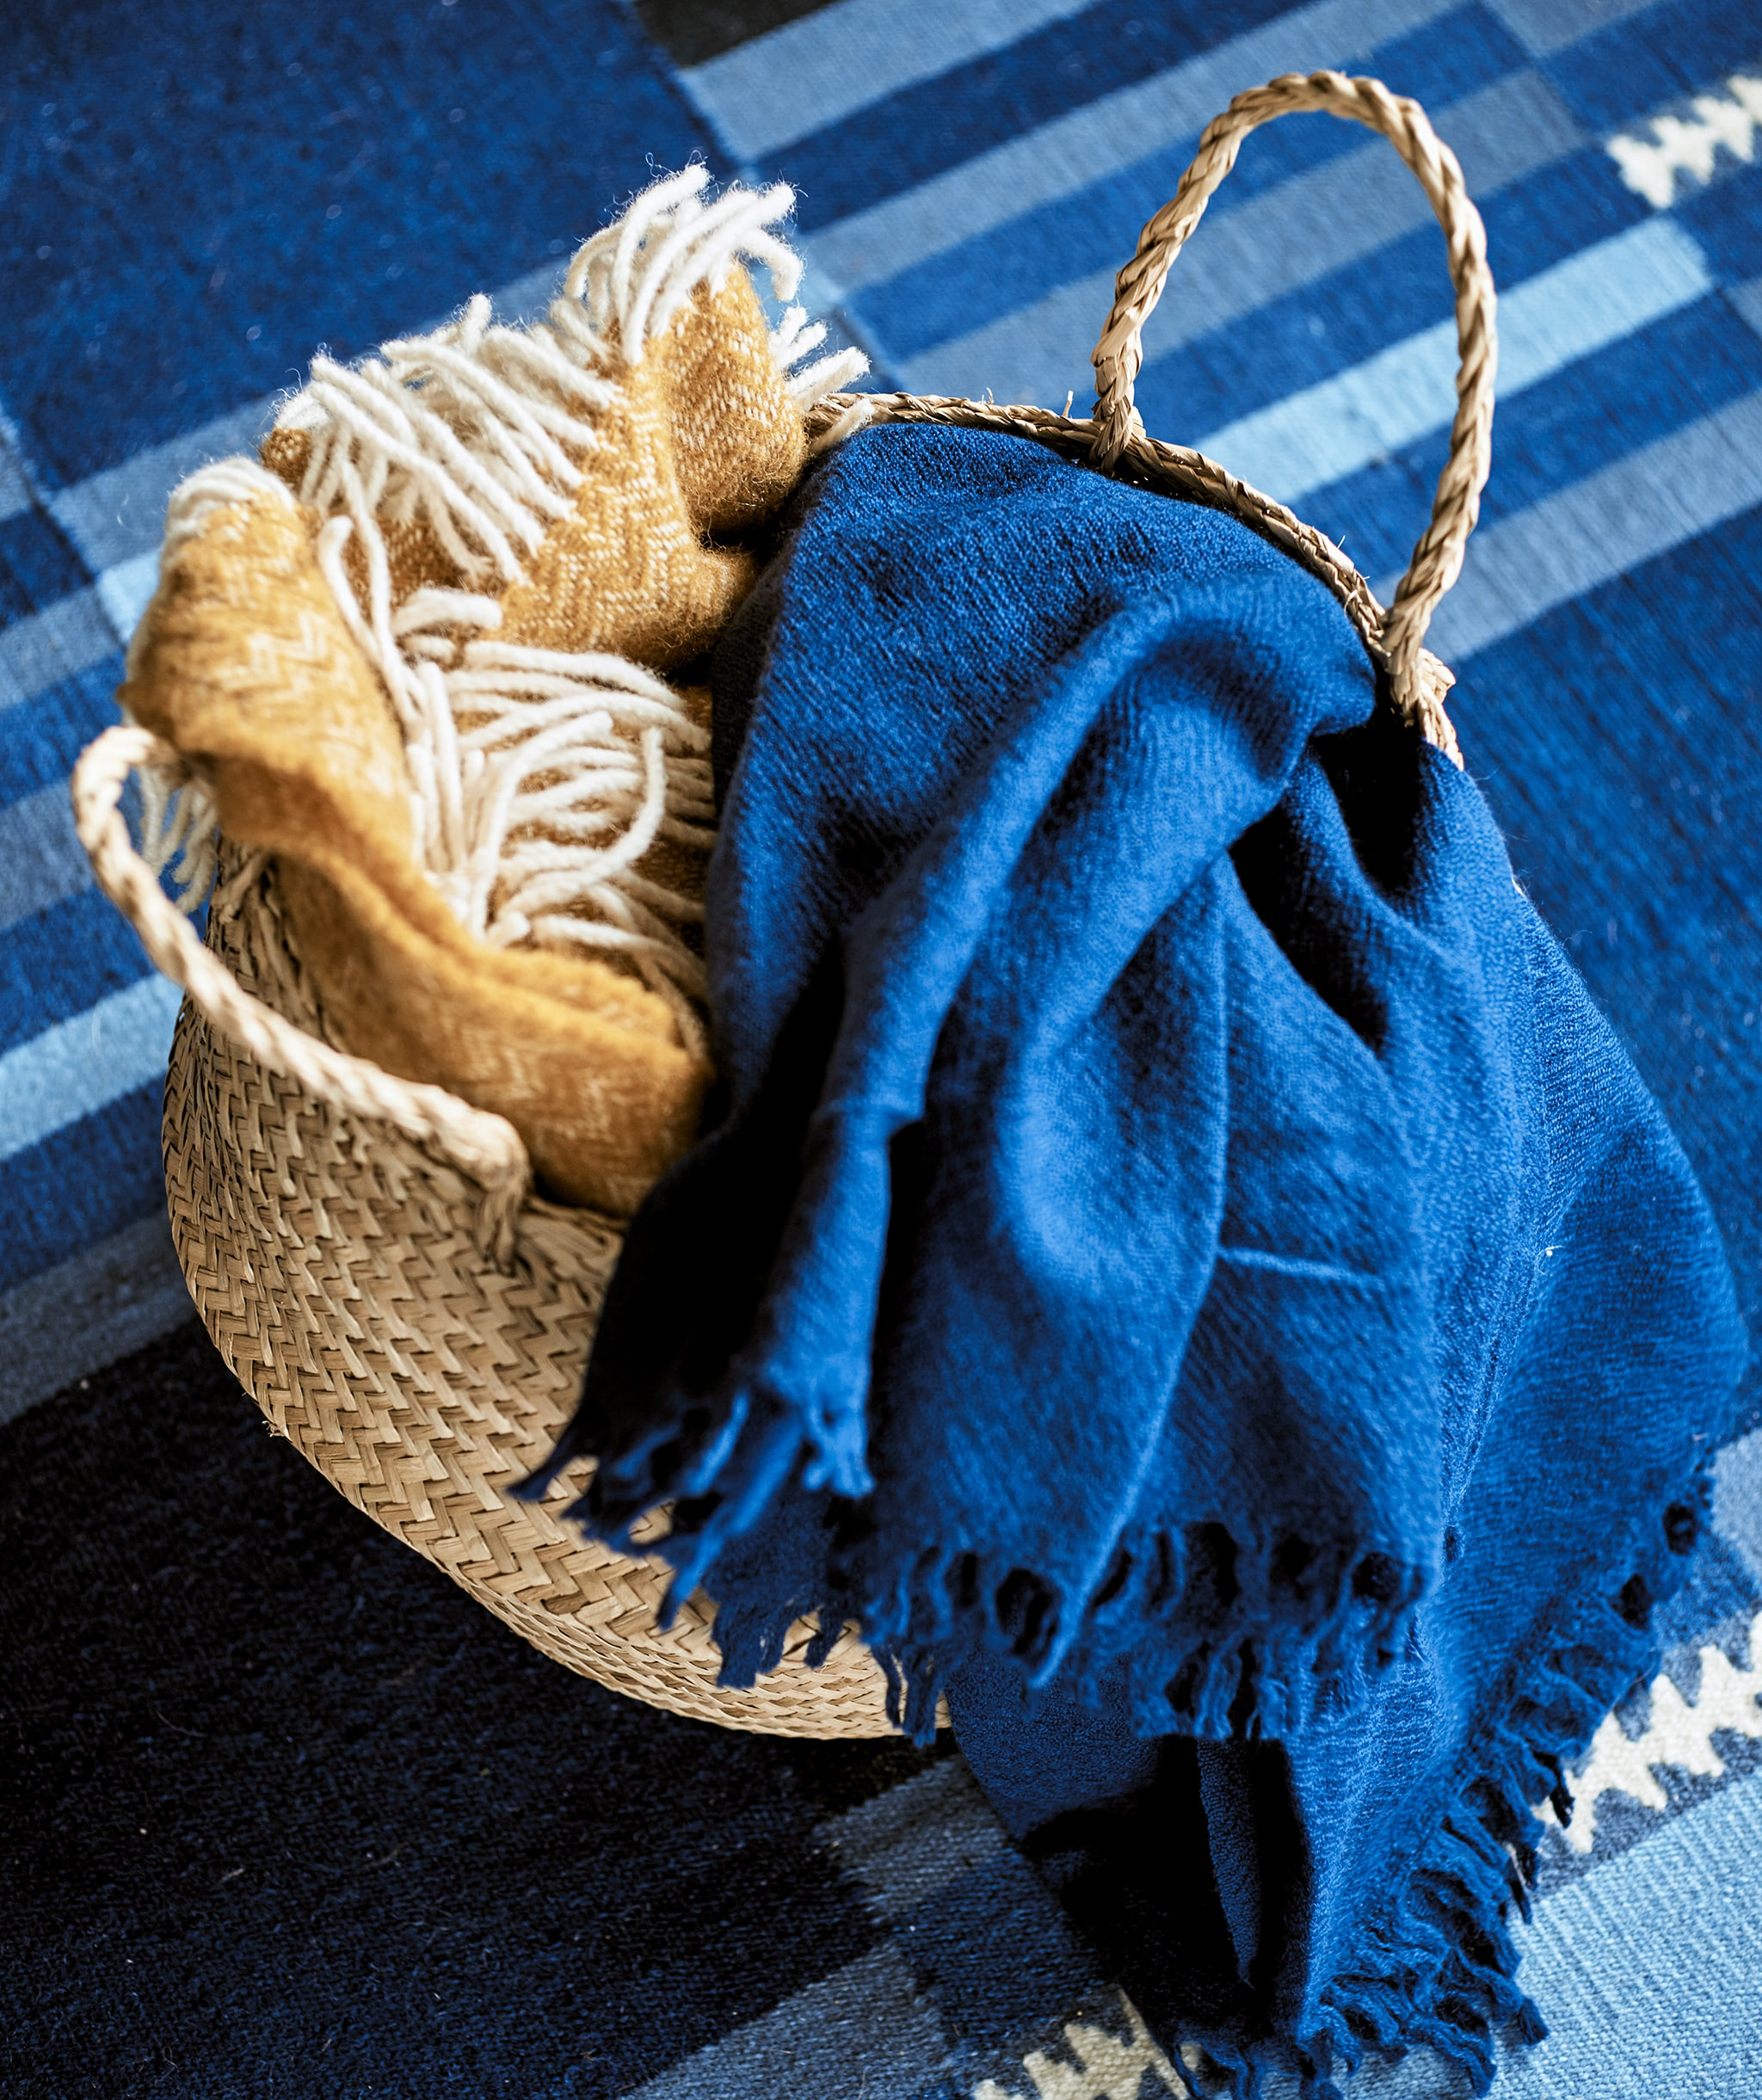 A woven basket containing a yellow fringed throw and a blue linen throw on a blue stripy patterned rug.